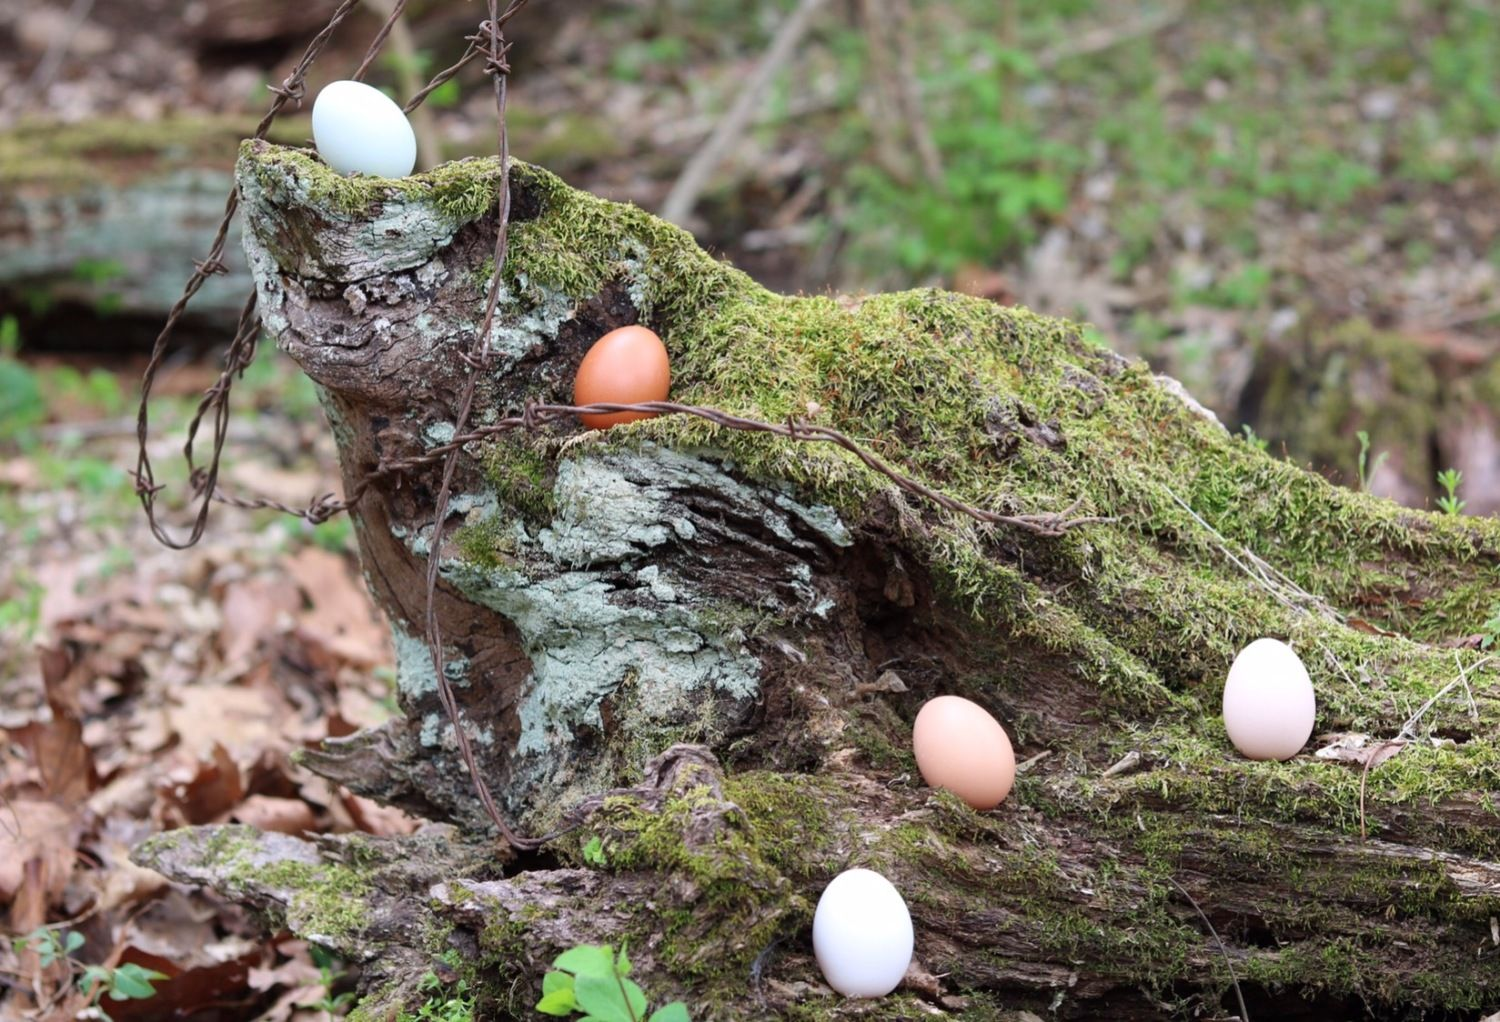 pioneerchick816's photos in Contest #7 Natural egg contest - 8th Annual BYC Easter Hatch-a-Long!